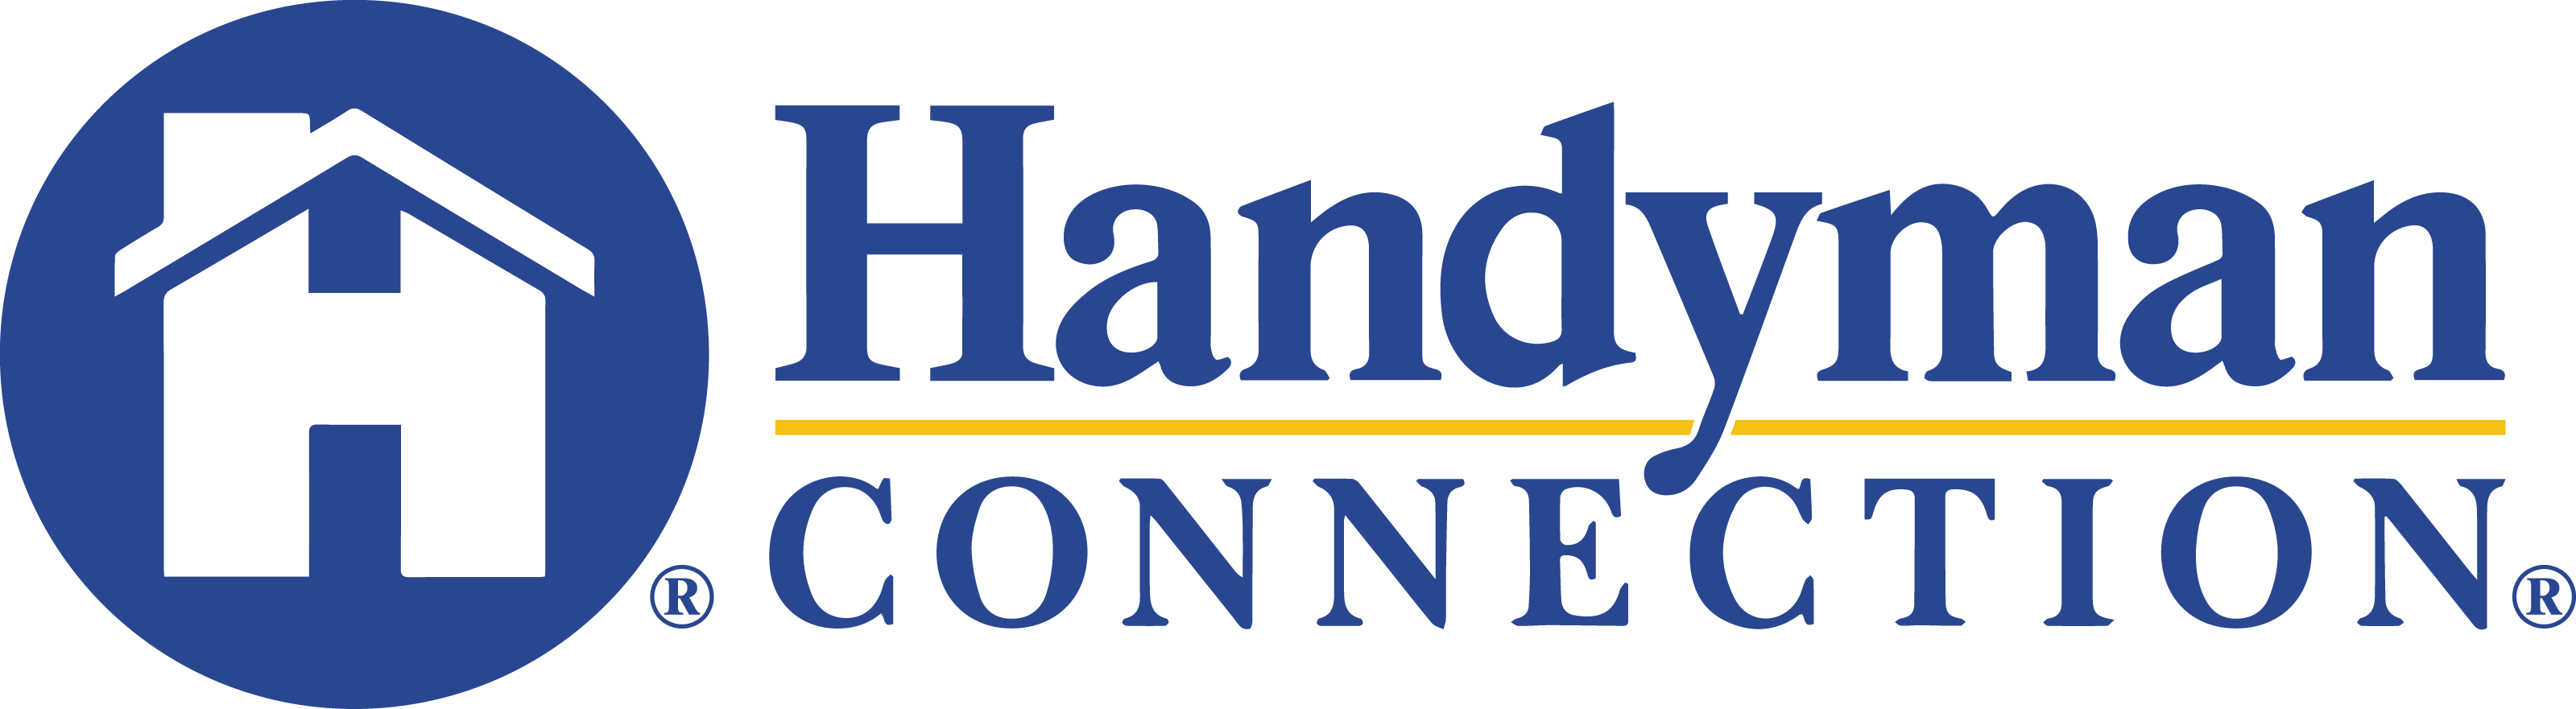 Handyman Connection of Rockville, MD